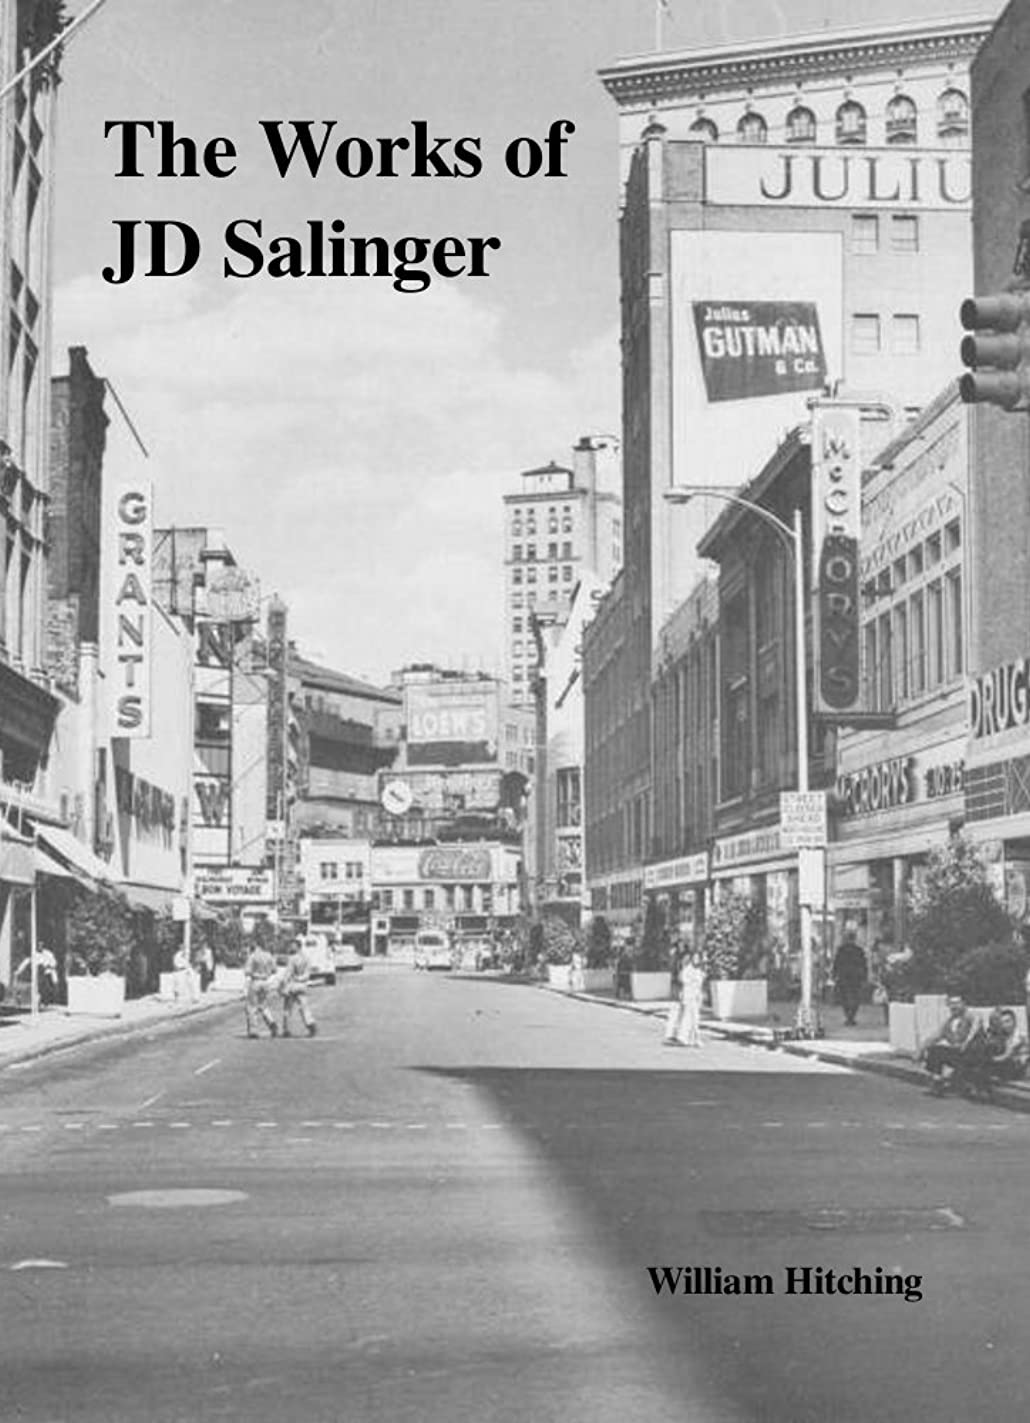 ハチ風邪をひく相対性理論The Works of JD Salinger (English Edition)